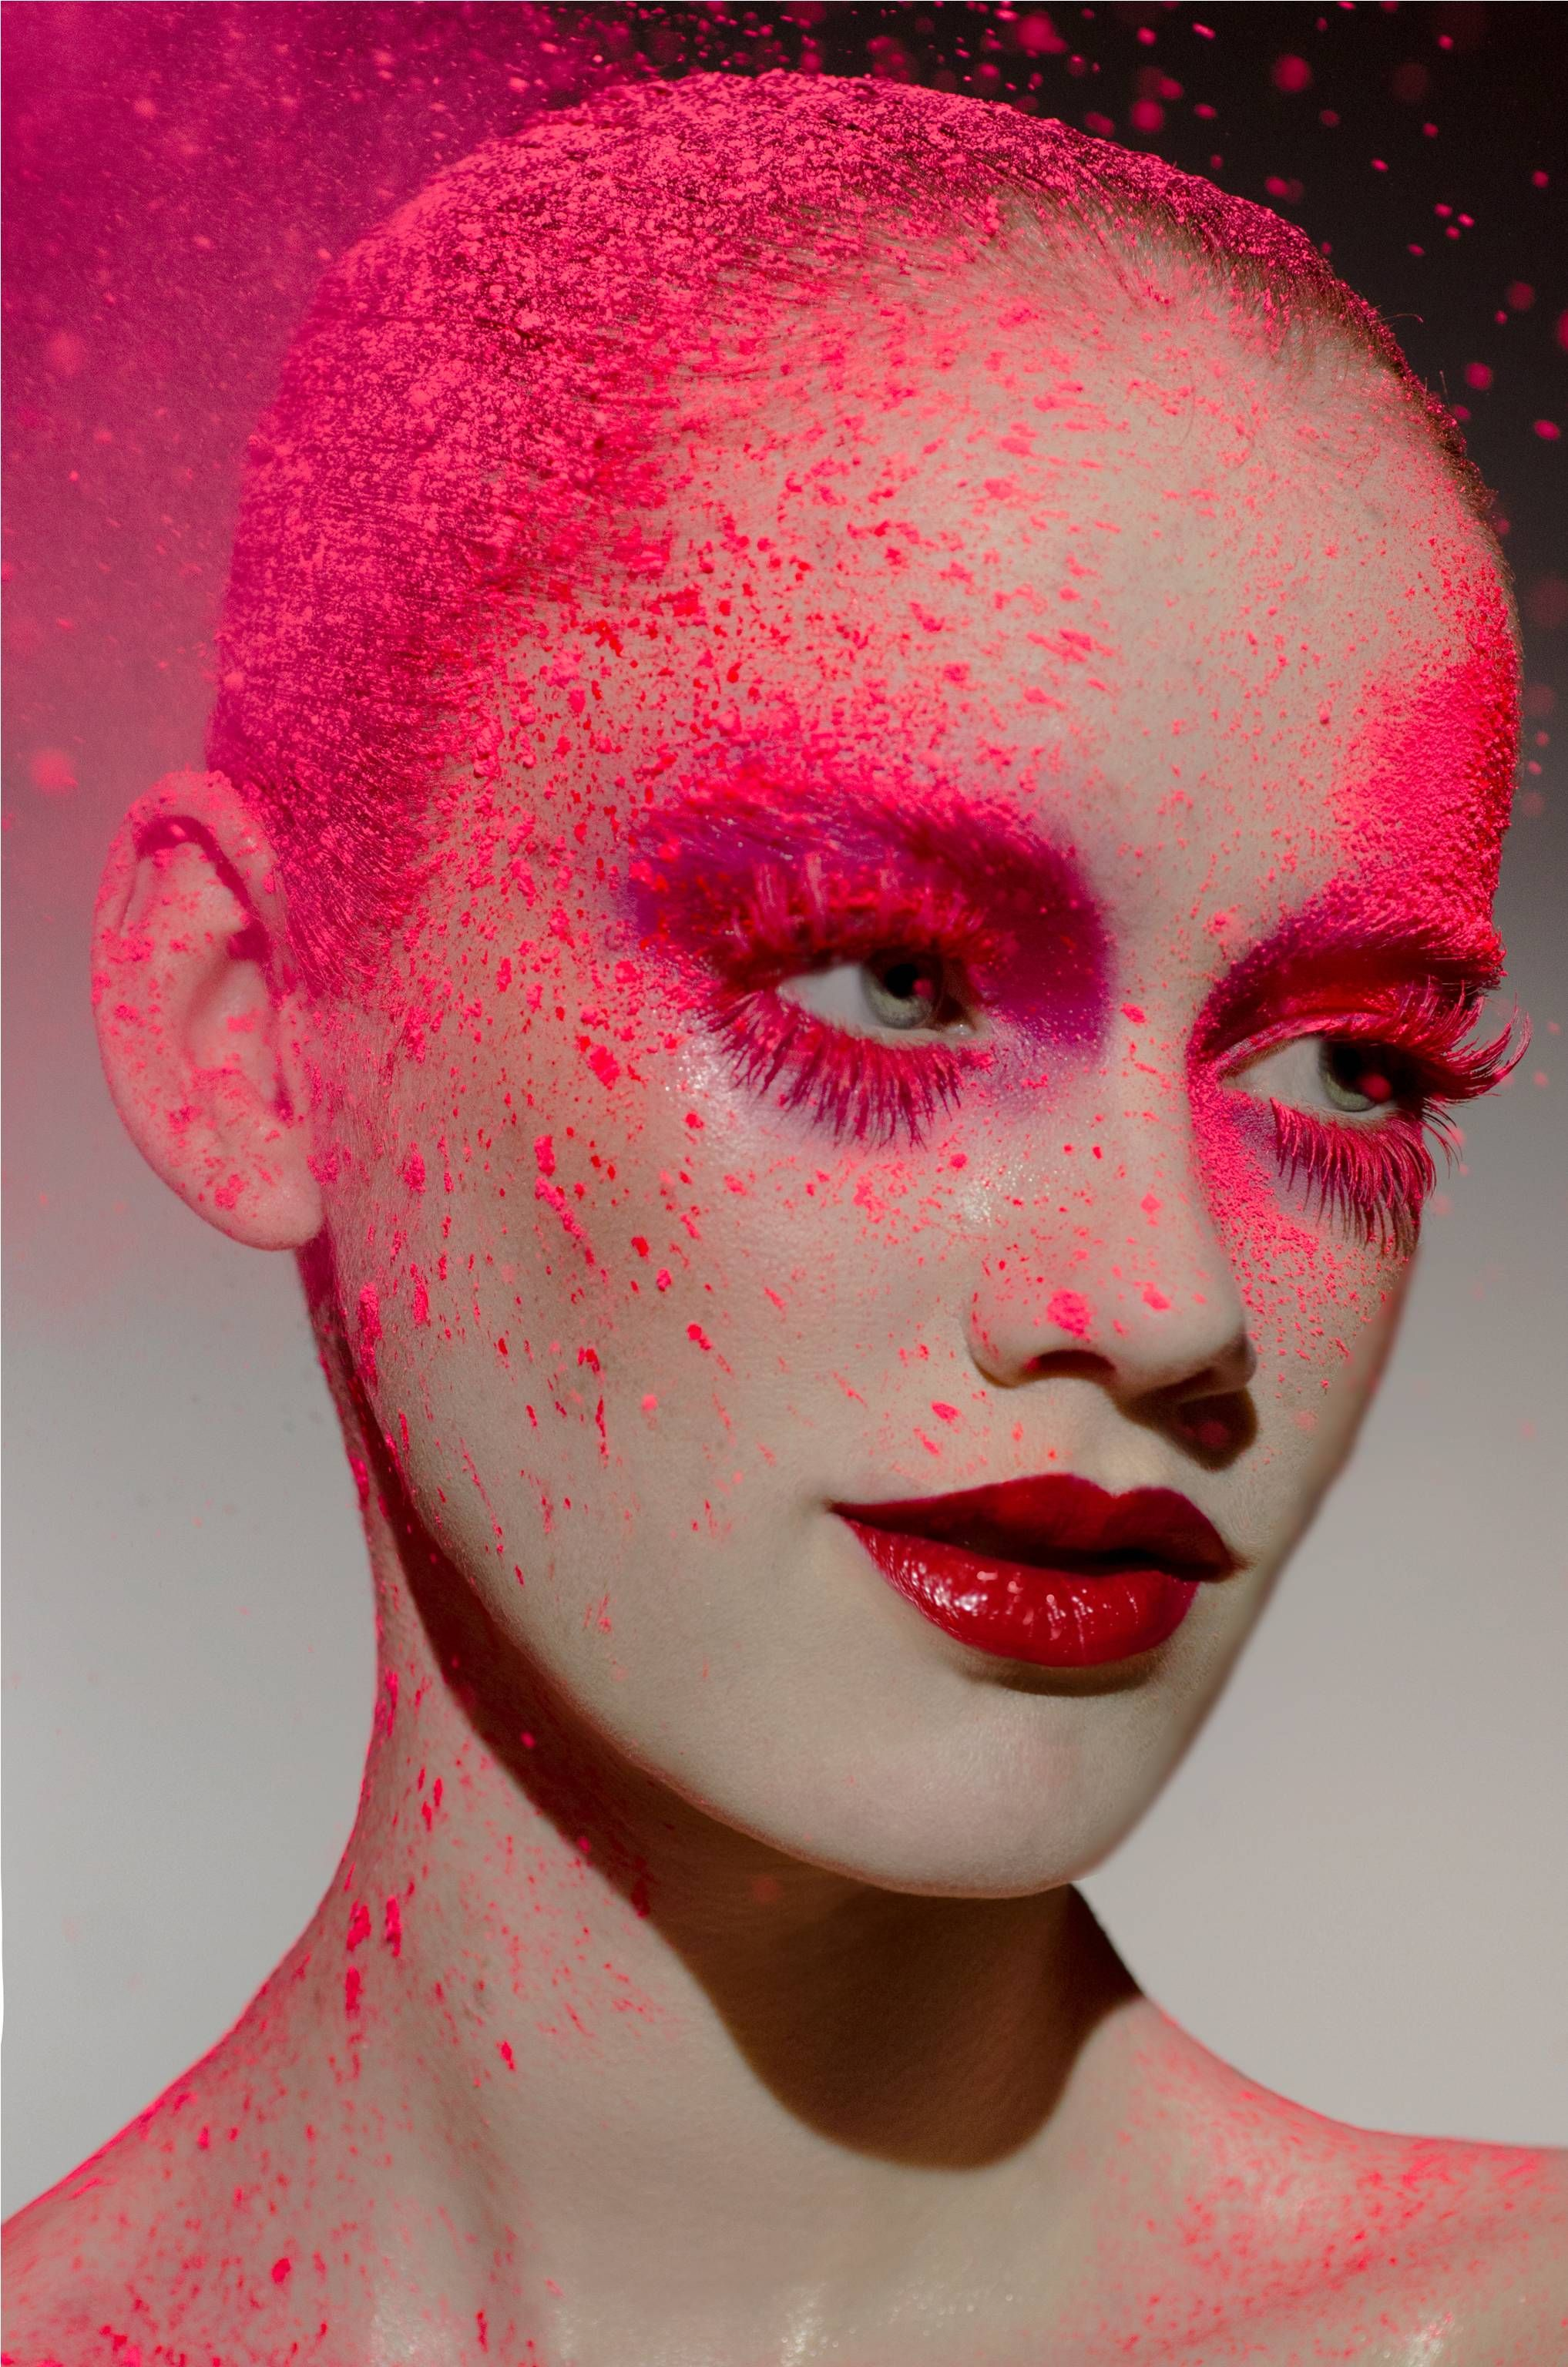 Hot Lips In 2018 Make Up And Hair Pinterest Makeup Art Klara Kiss Proof 10 Madgenta Stunning Bold From Ellis Faas Has Worked With Everyone Mario Testino To Karl Lagerfeld